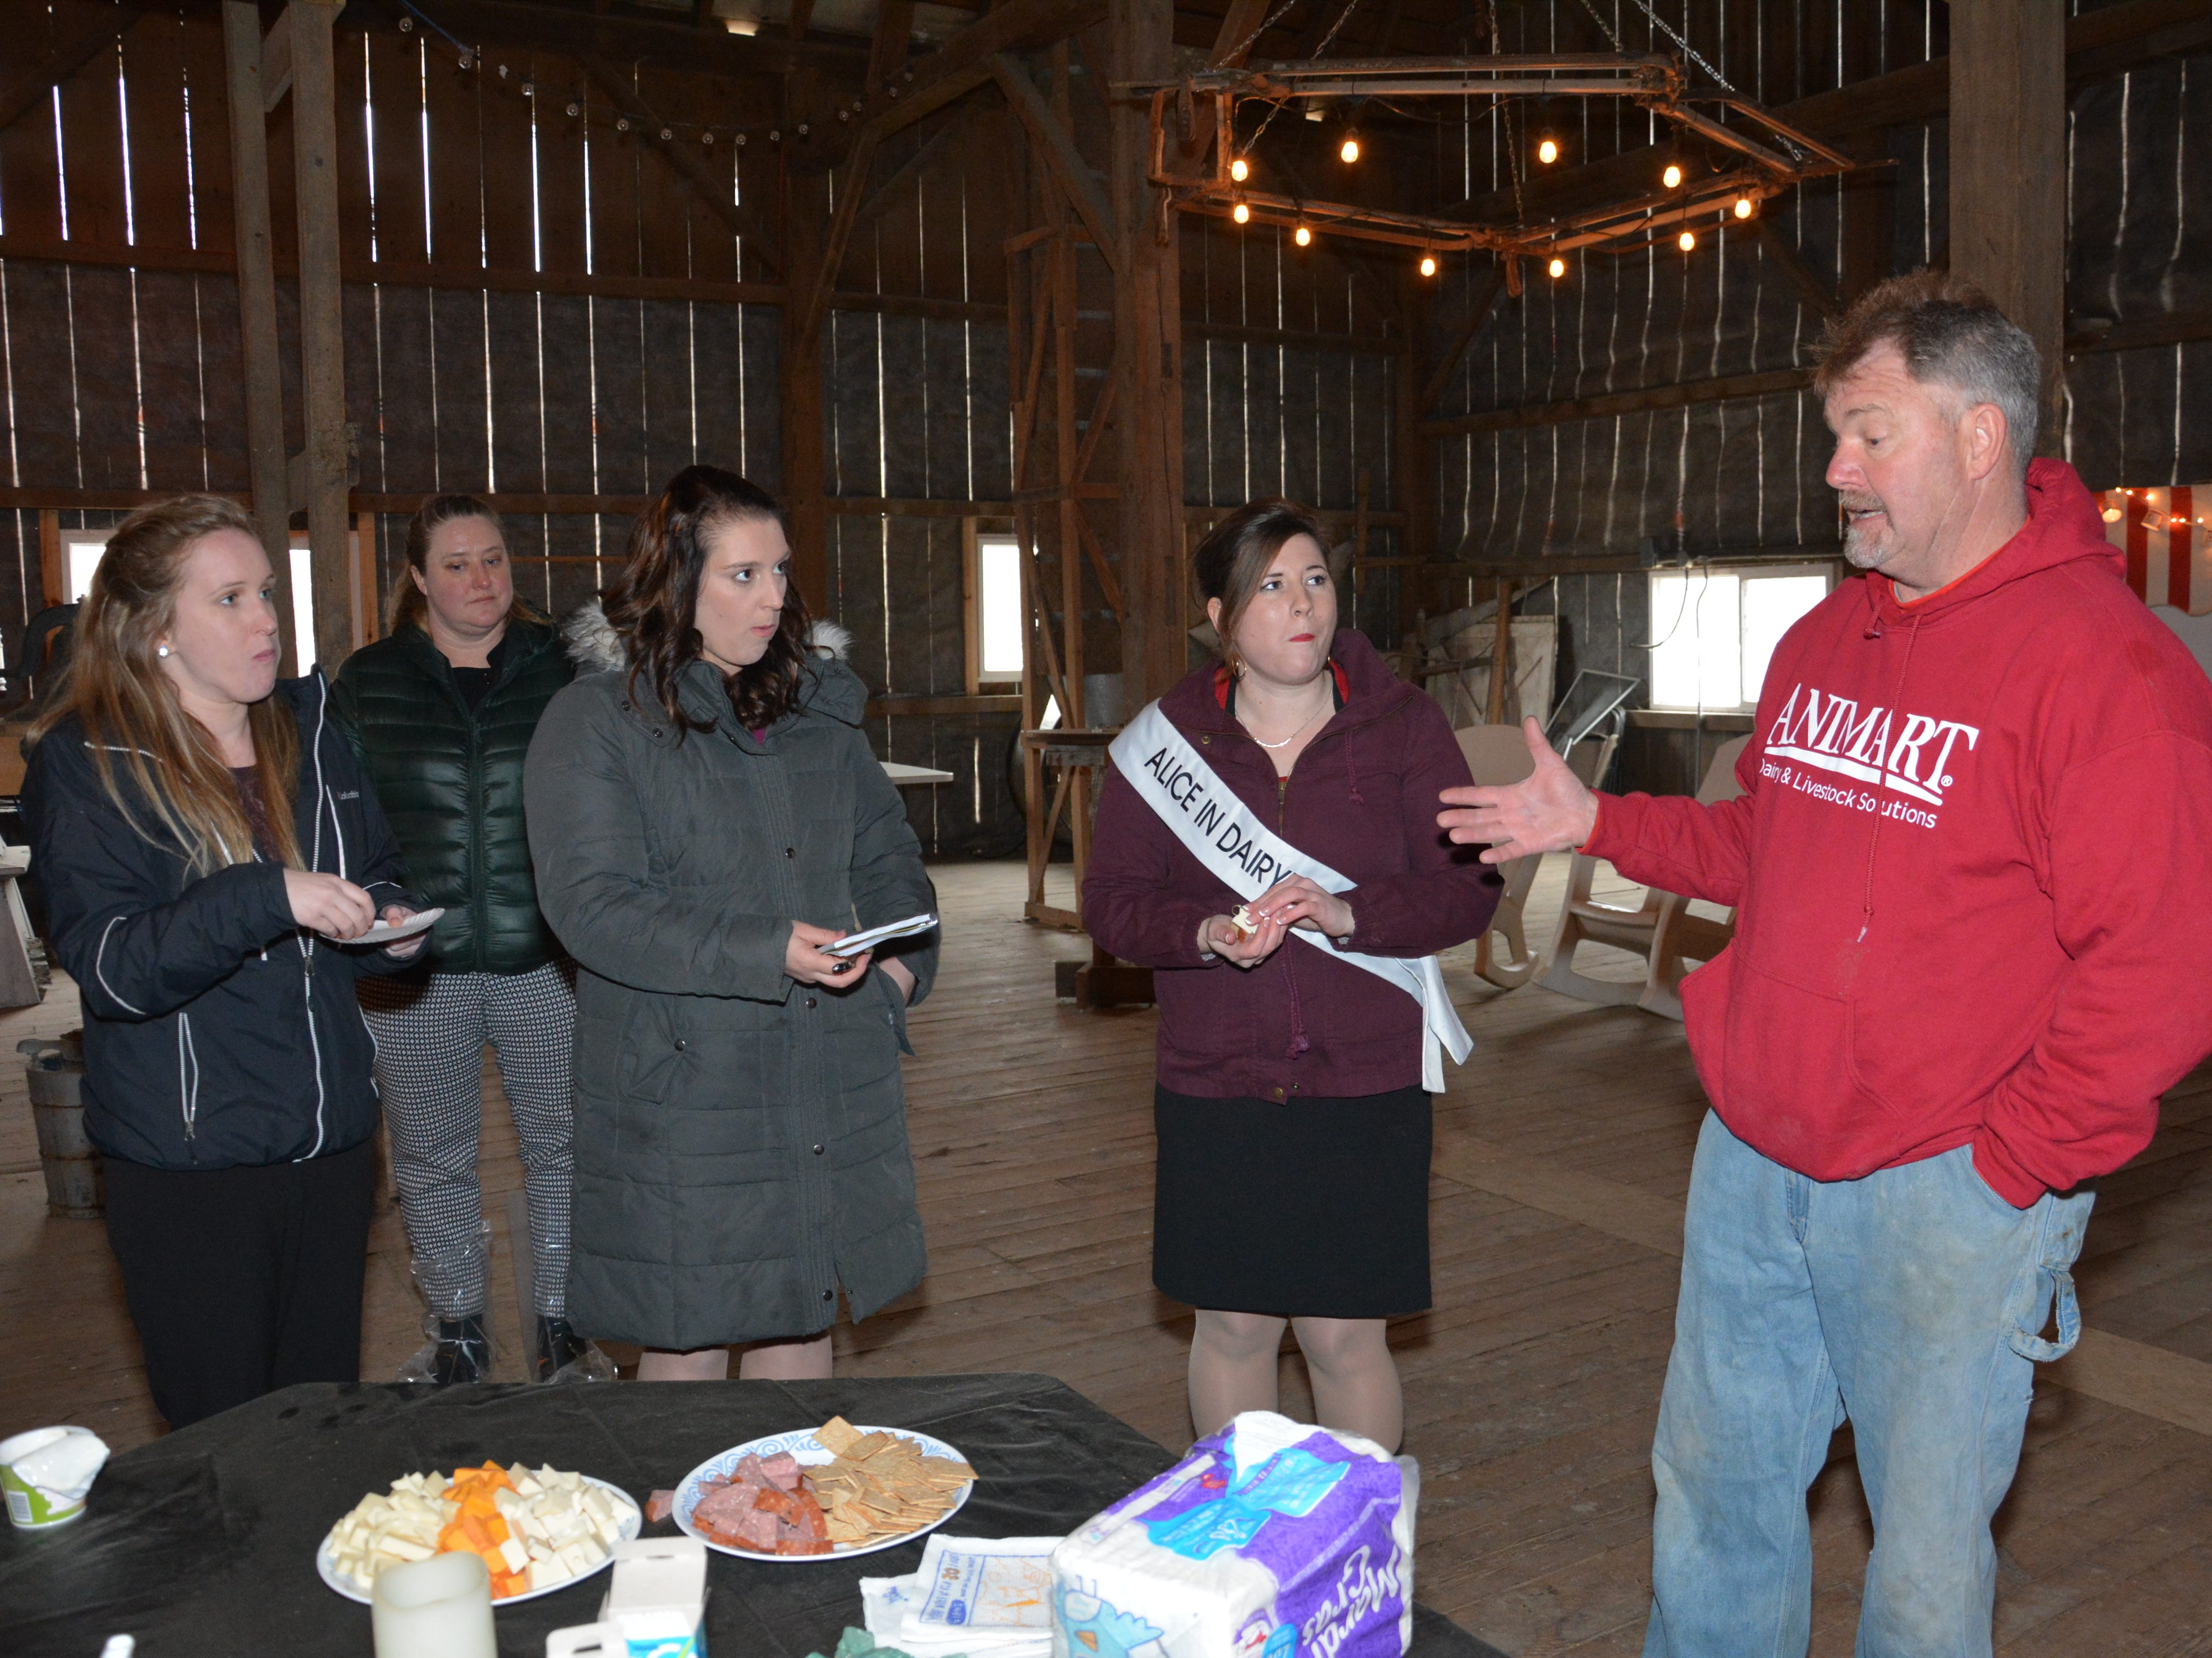 Bryan Voegeli talks with the girls during the a tour of Voegeli Farms in Monticello, Wis.